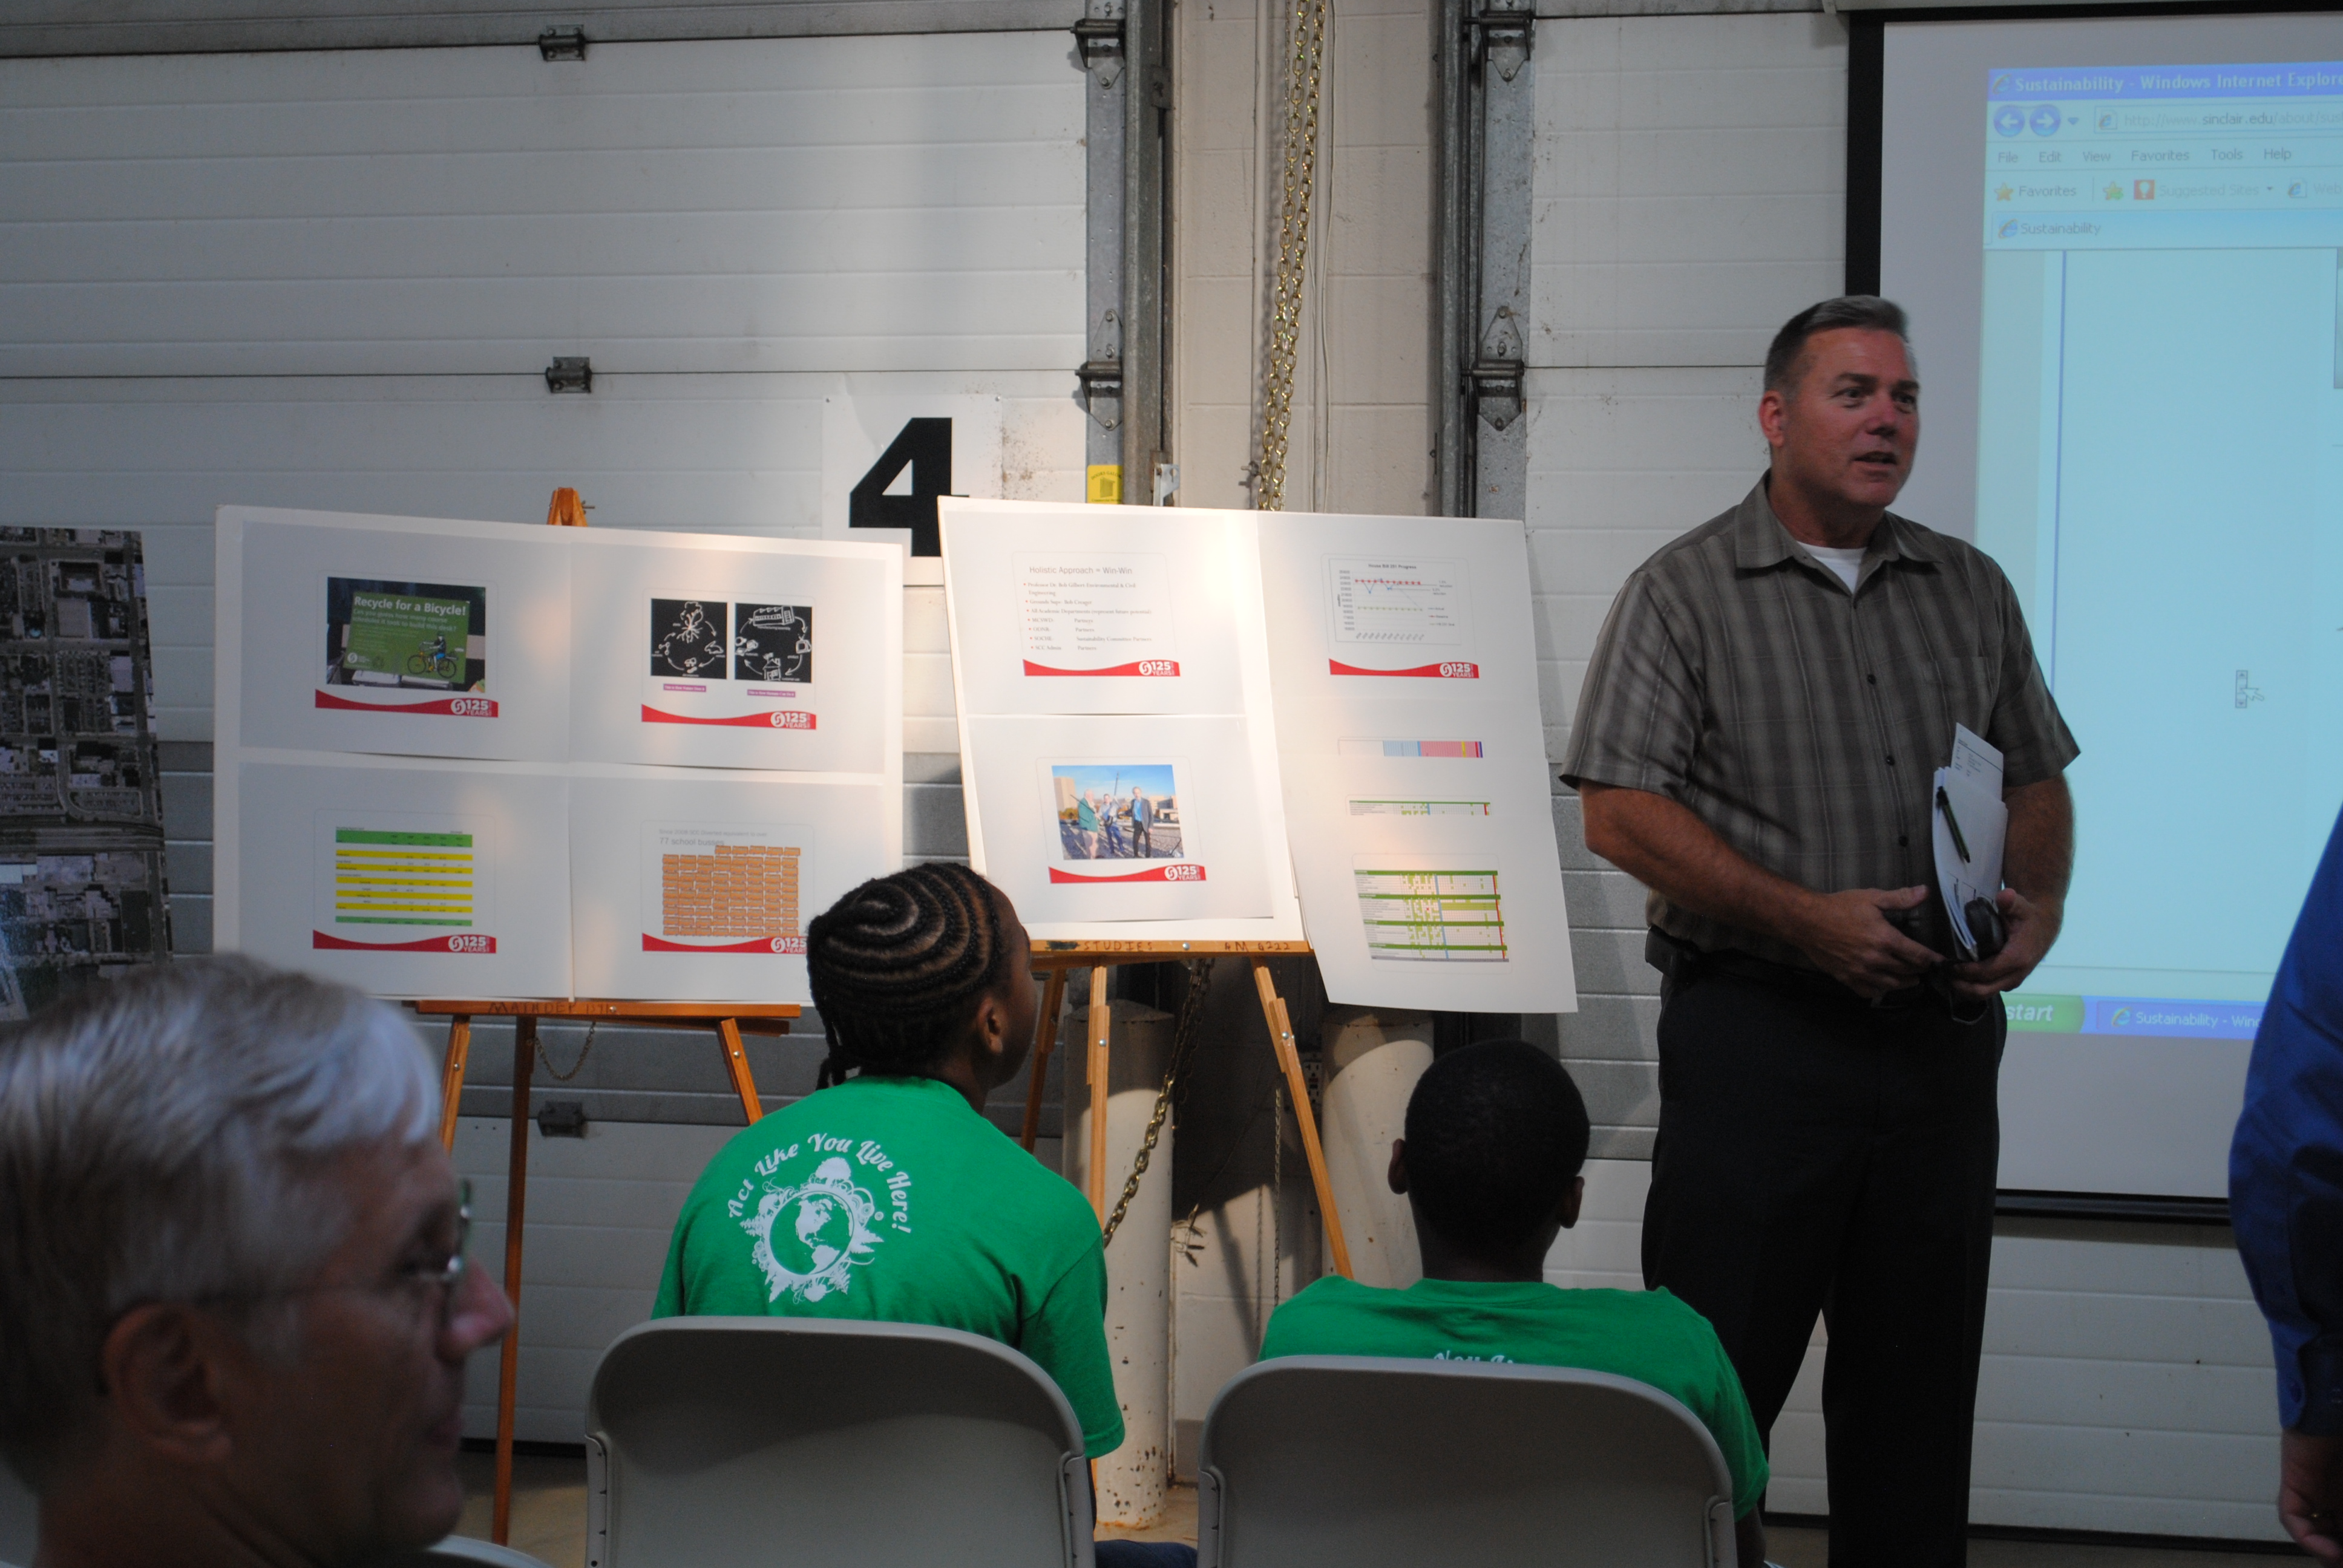 Woody Woodruff, director of Facilities Management at Sinclair speaking to a group of youths at Sinclair earlier this September.